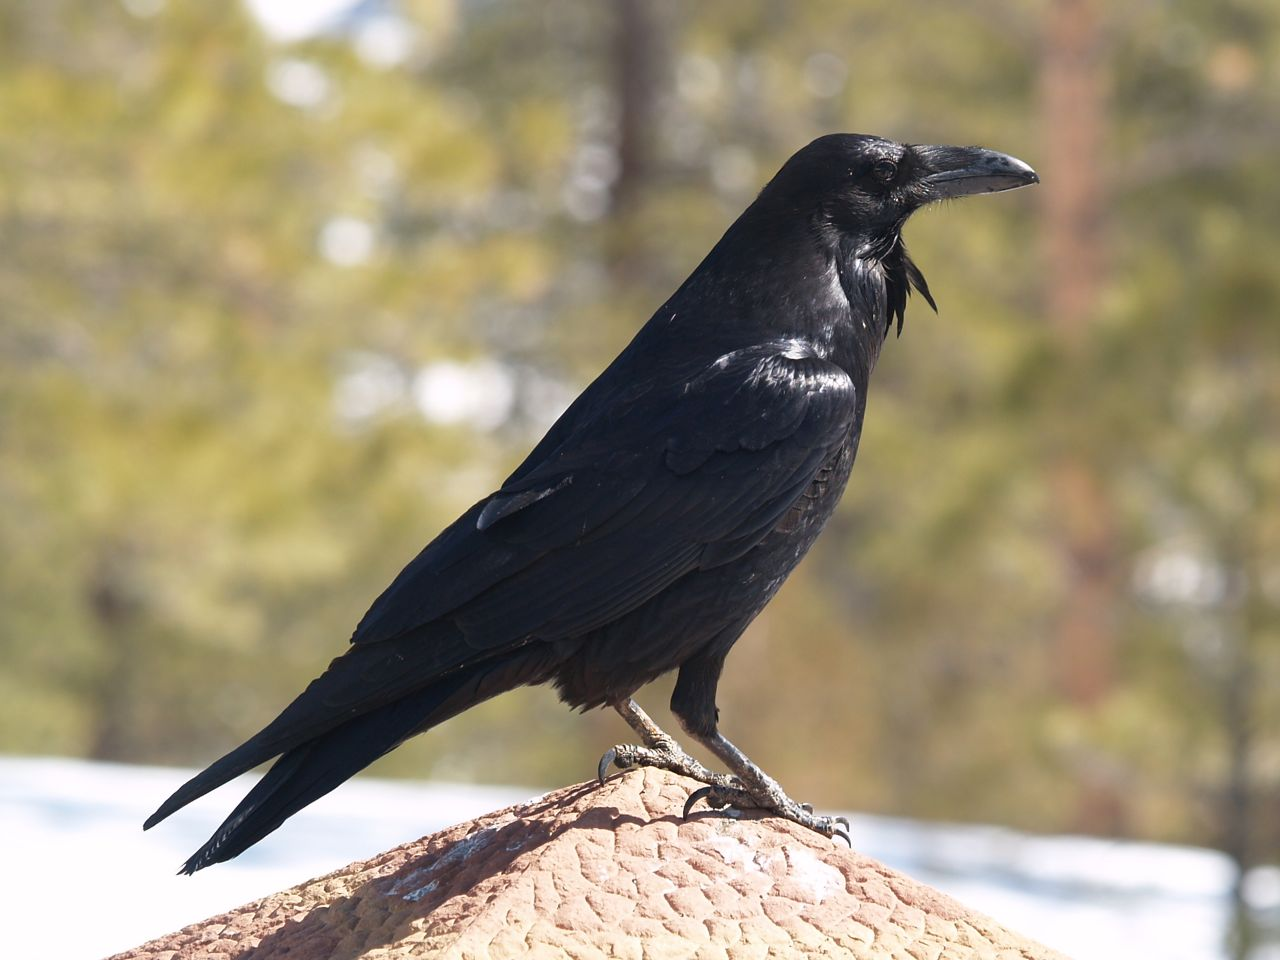 Black Raven on the Roof